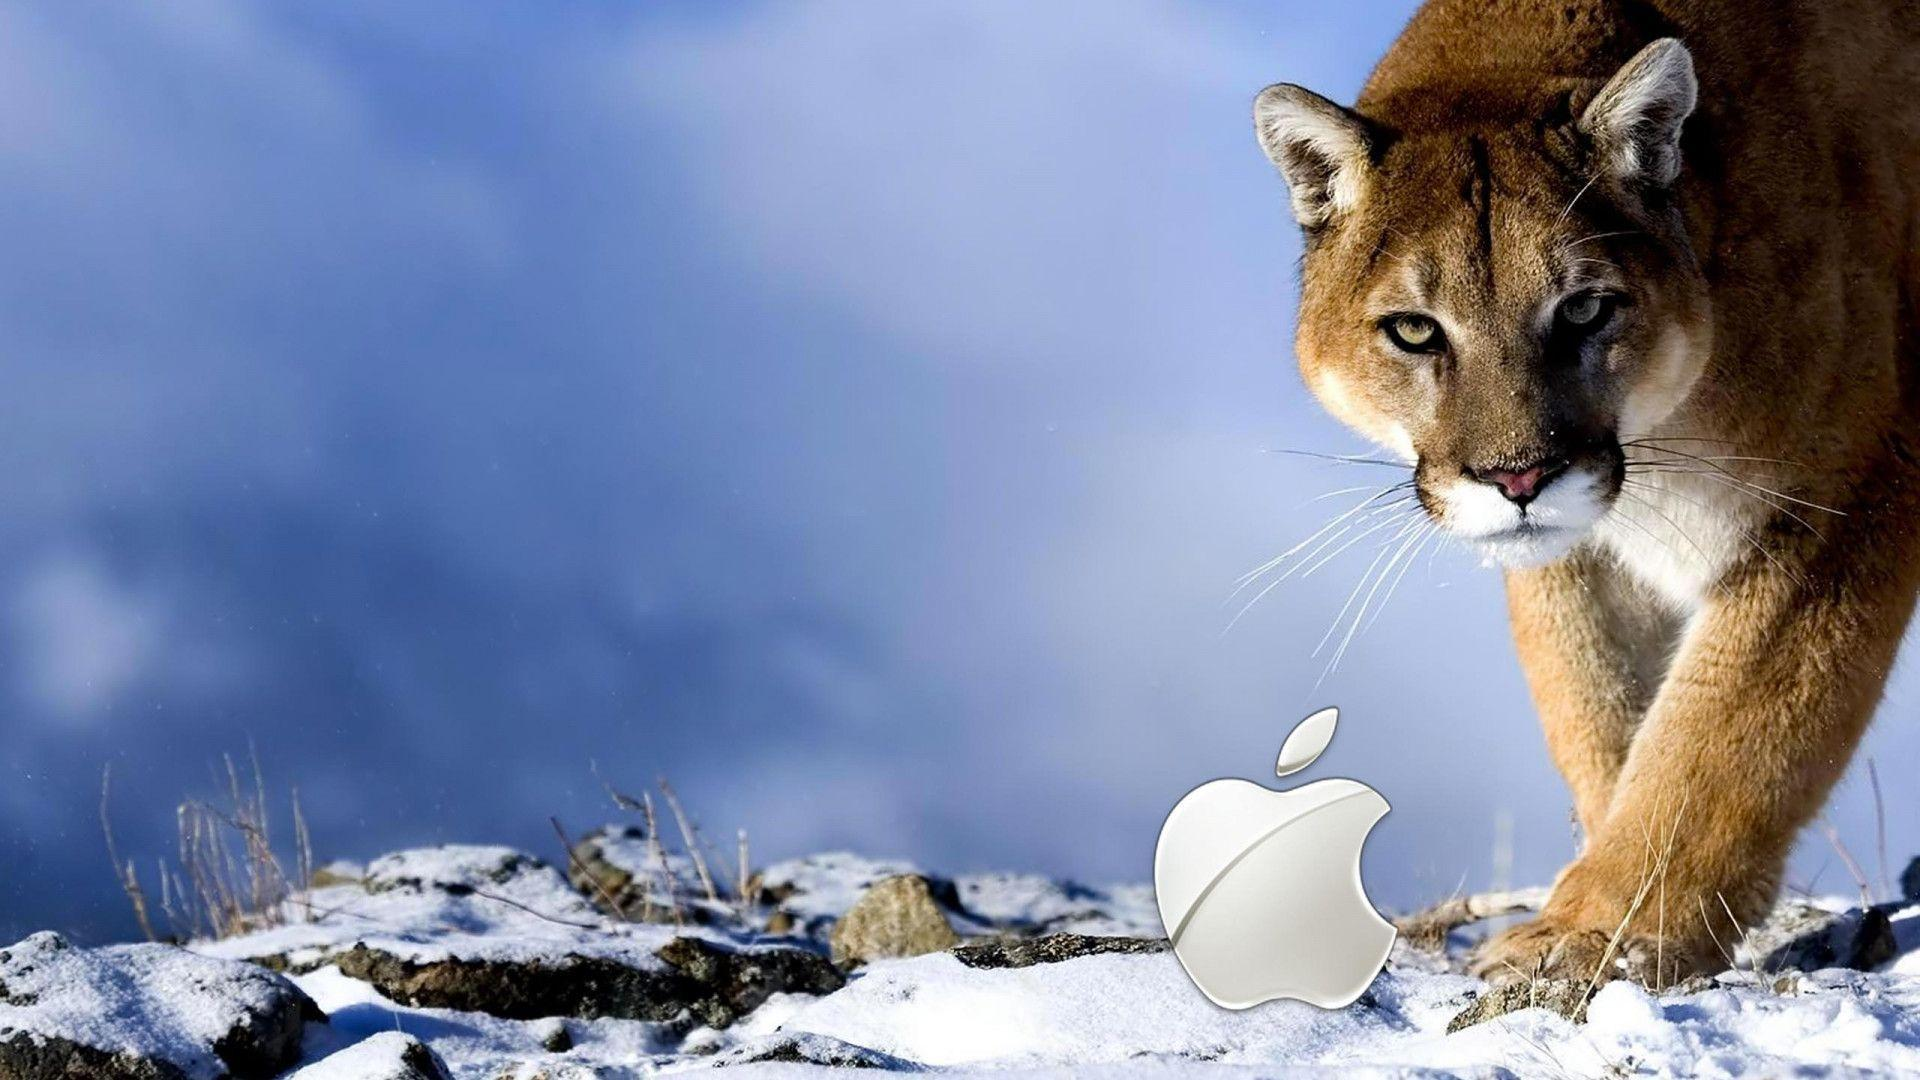 Tiger Apple HD Wallpapers 1080p